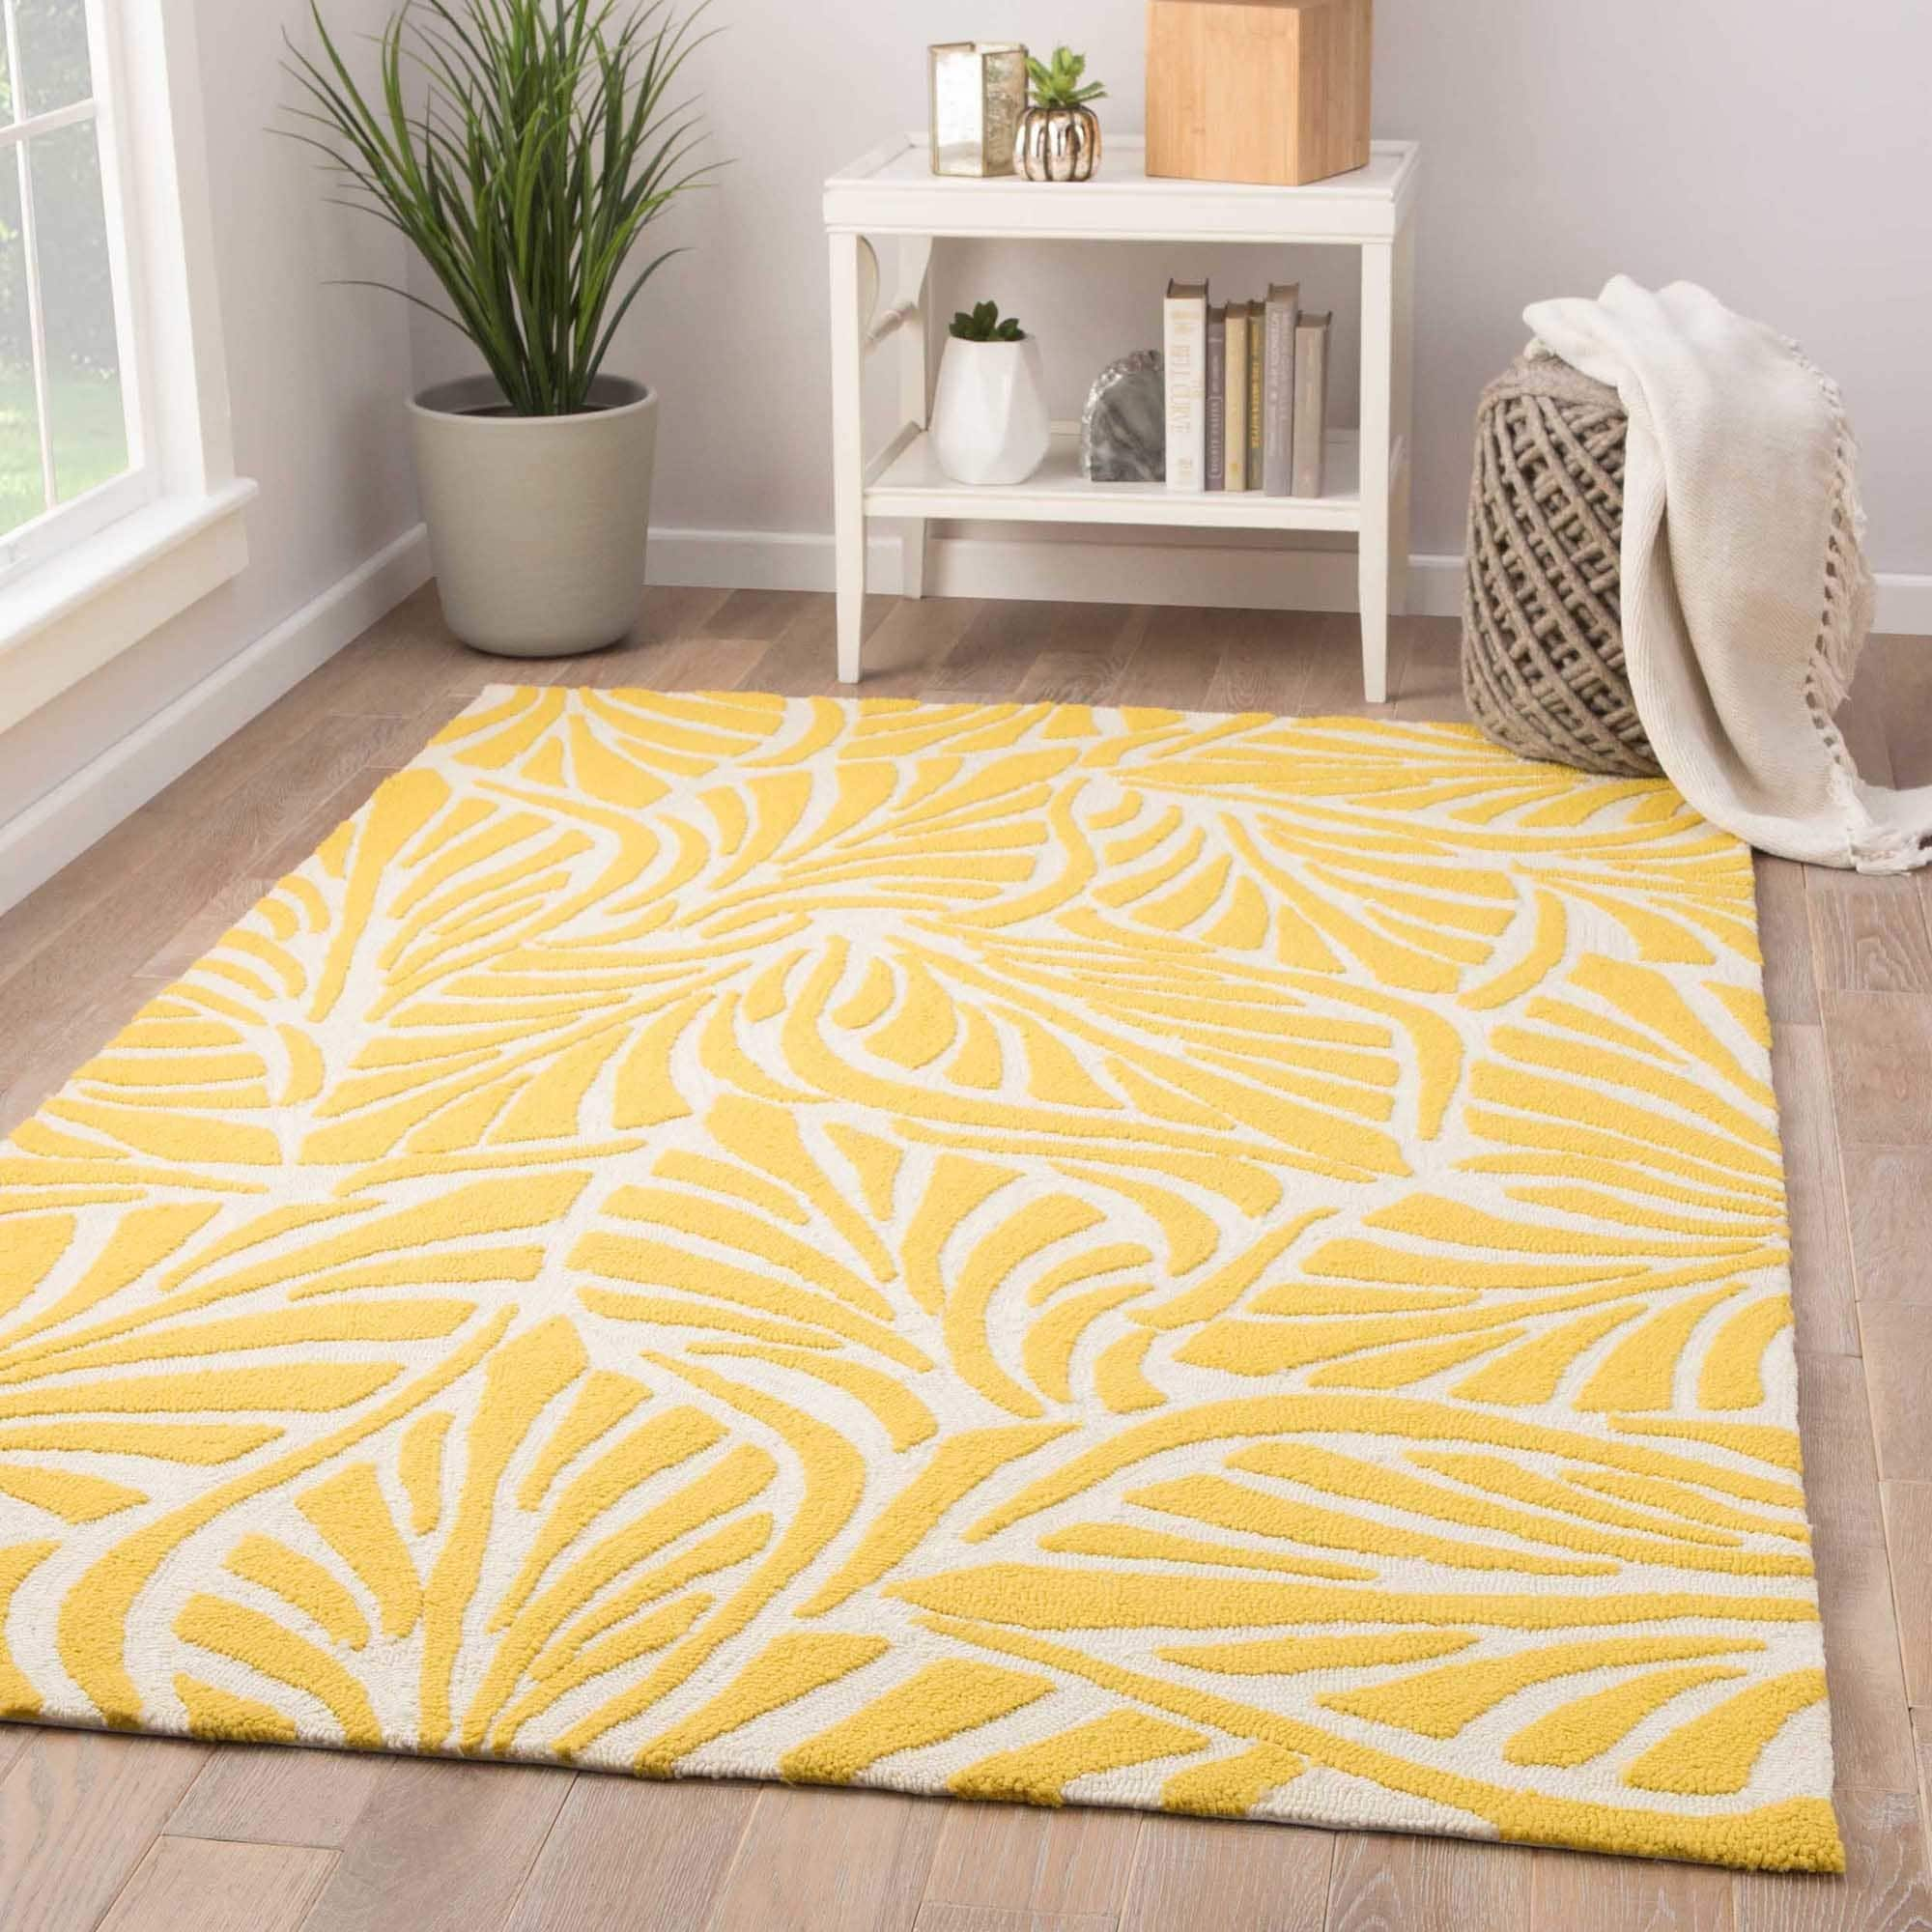 Havenside Home Cannon Indoor Outdoor Fl Yellow Cream Area Rug 7 X27